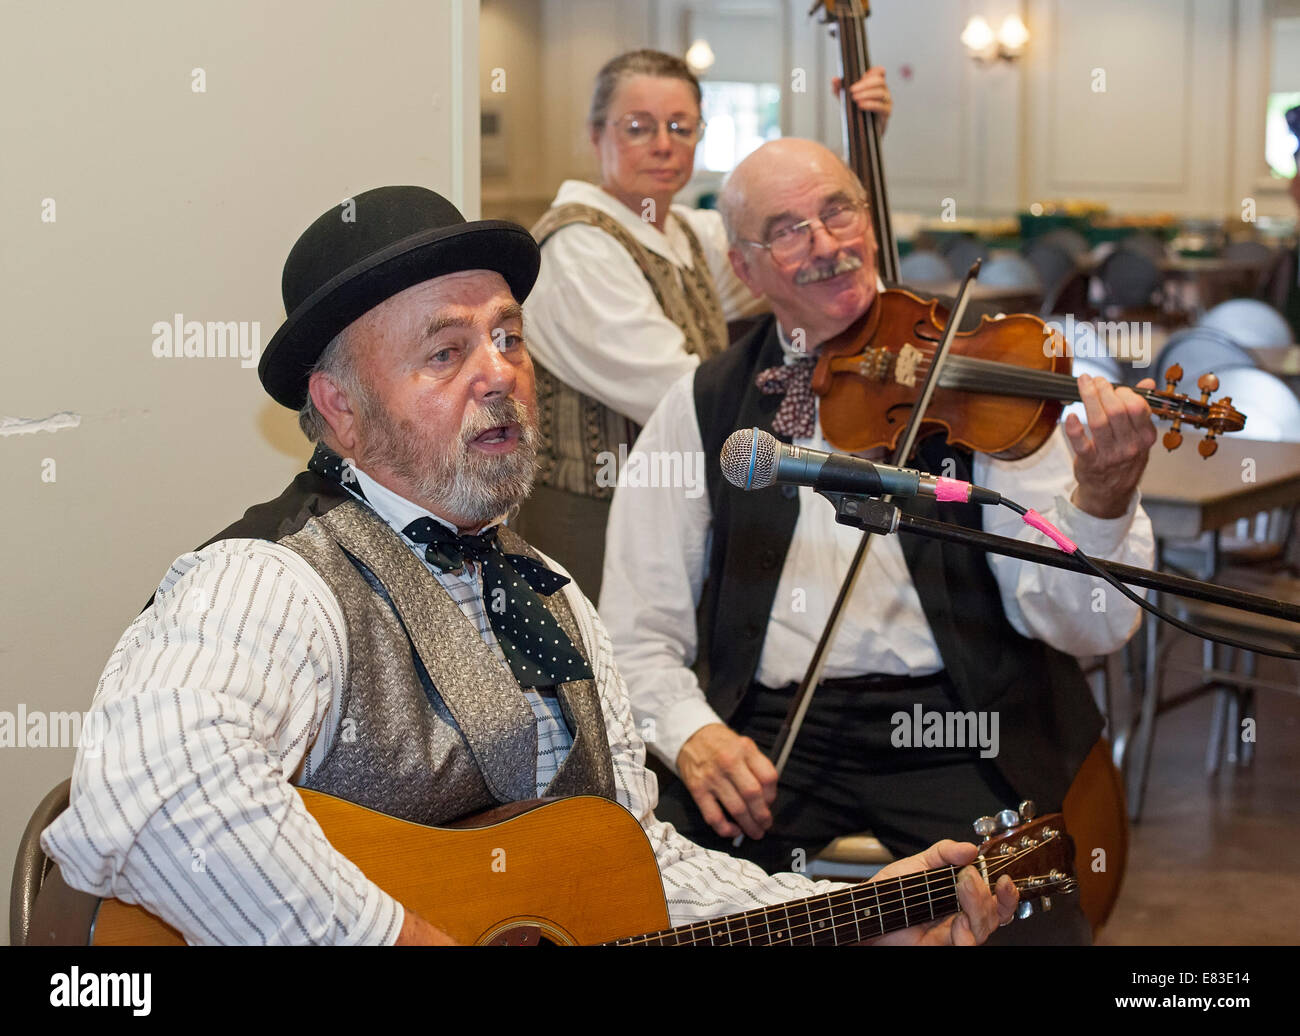 Dearborn, Michigan - The Picks & Sticks String Band plays at Greenfield Village. - Stock Image